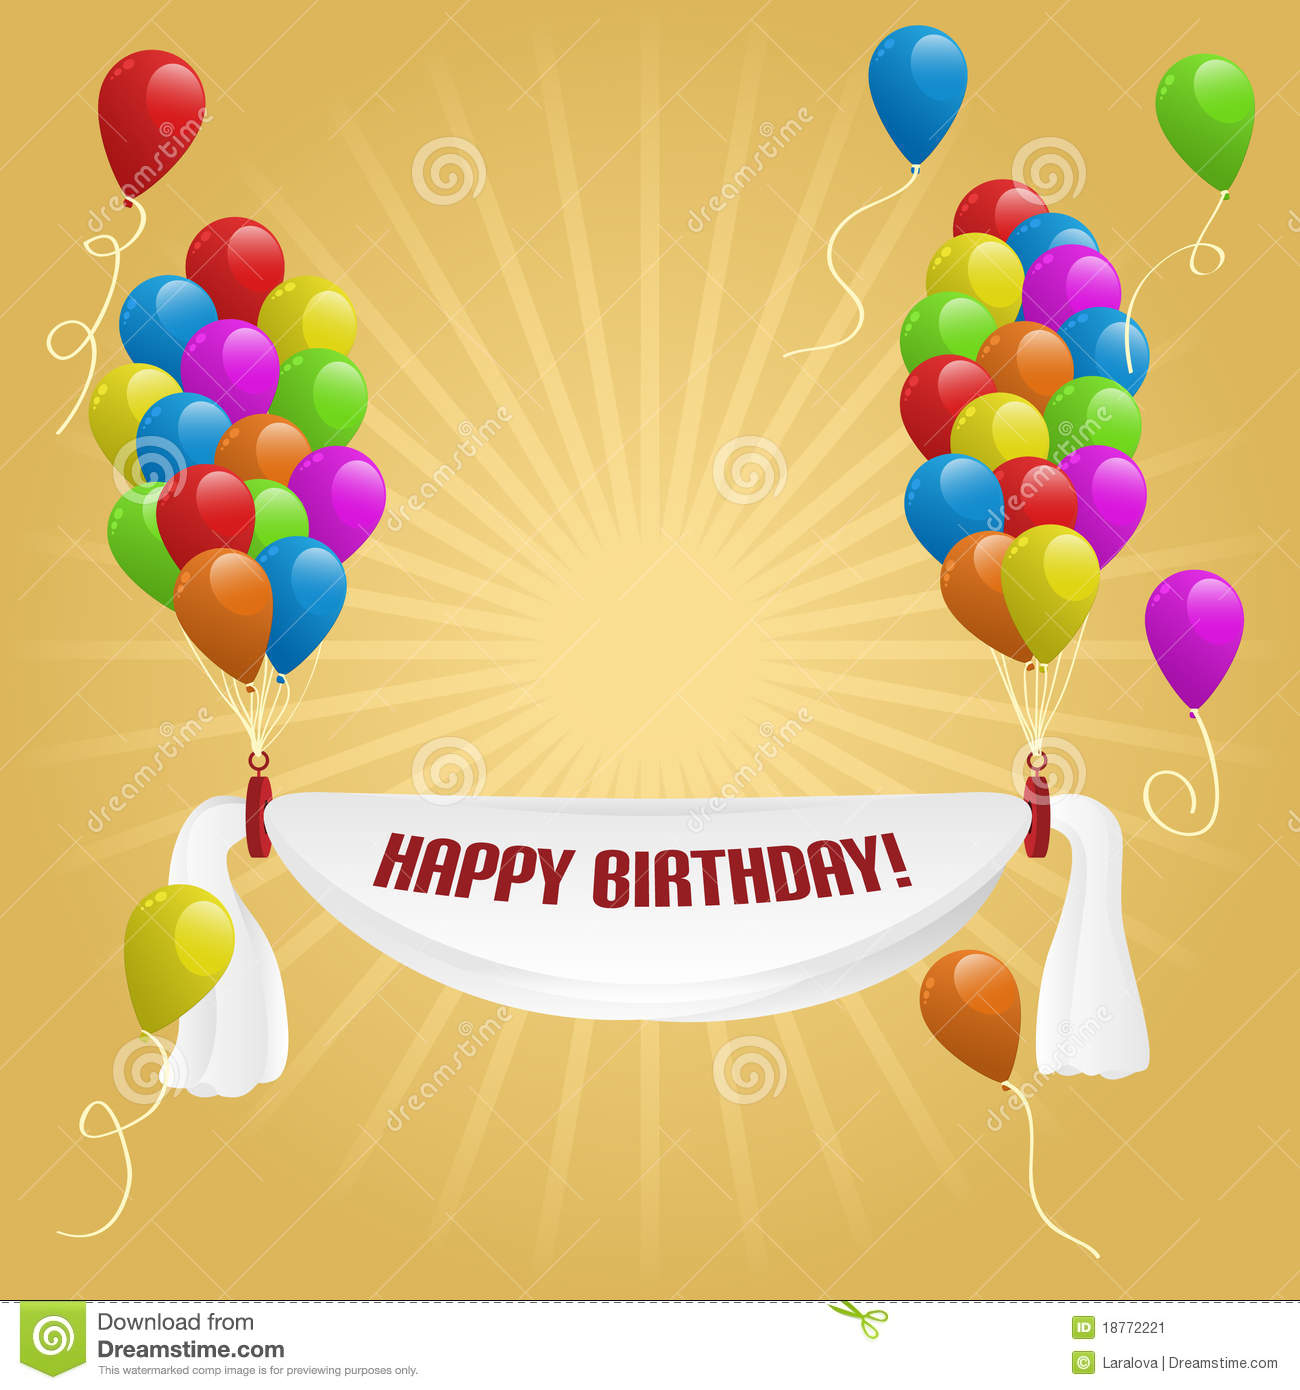 Happy Birthday Banner Stock Images RoyaltyFree Images